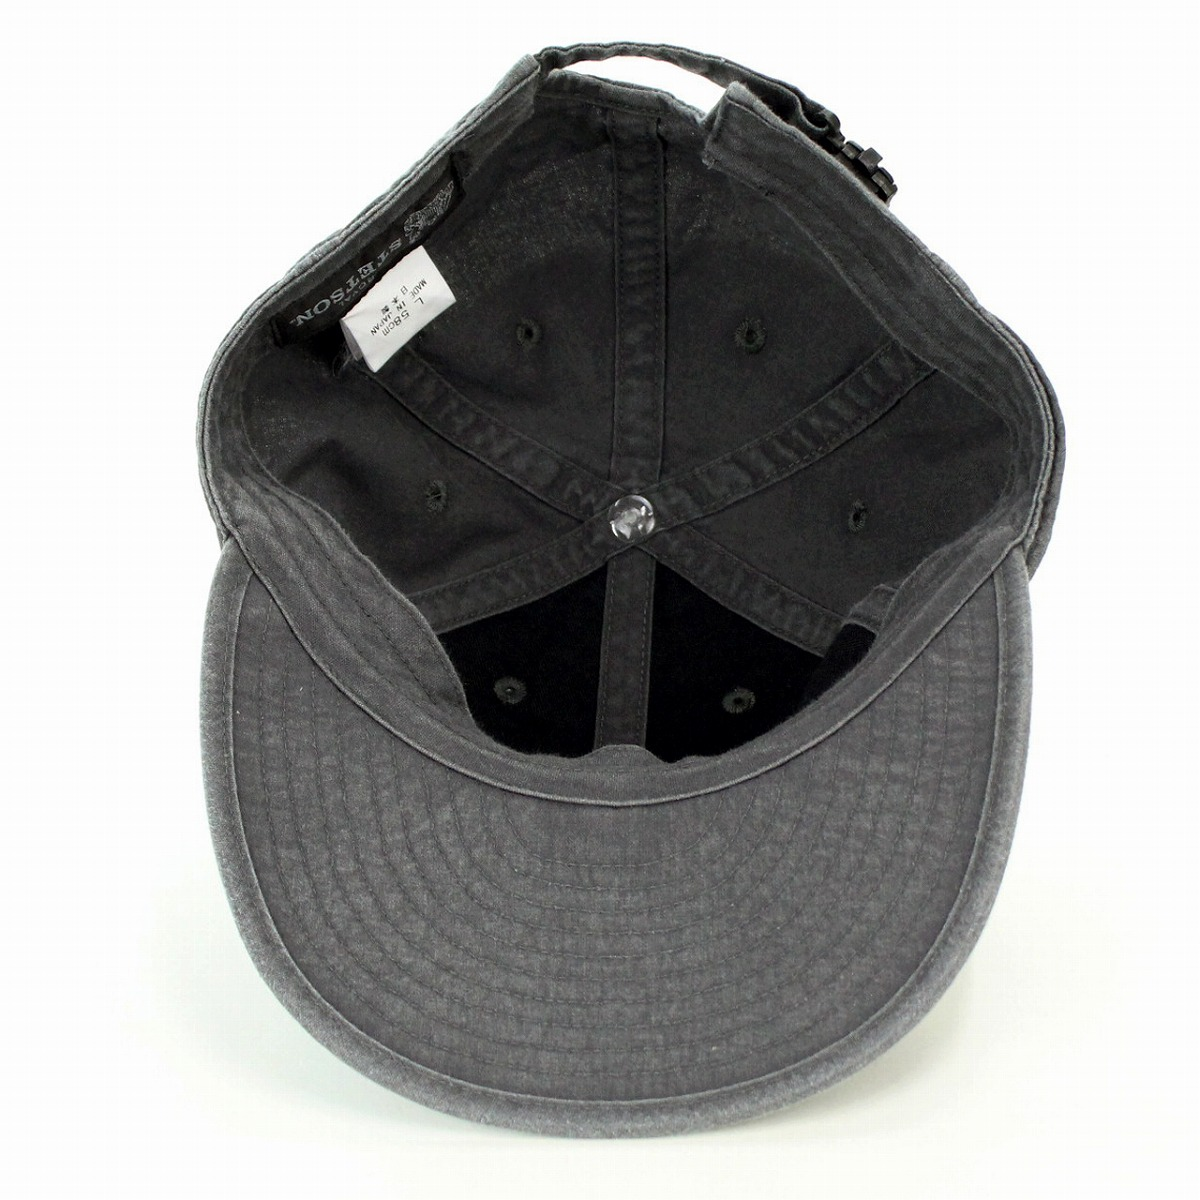 ... It is folding 6 cap Shin pull size richness size adjustment possibility    black black ... 02d92be0b8ce